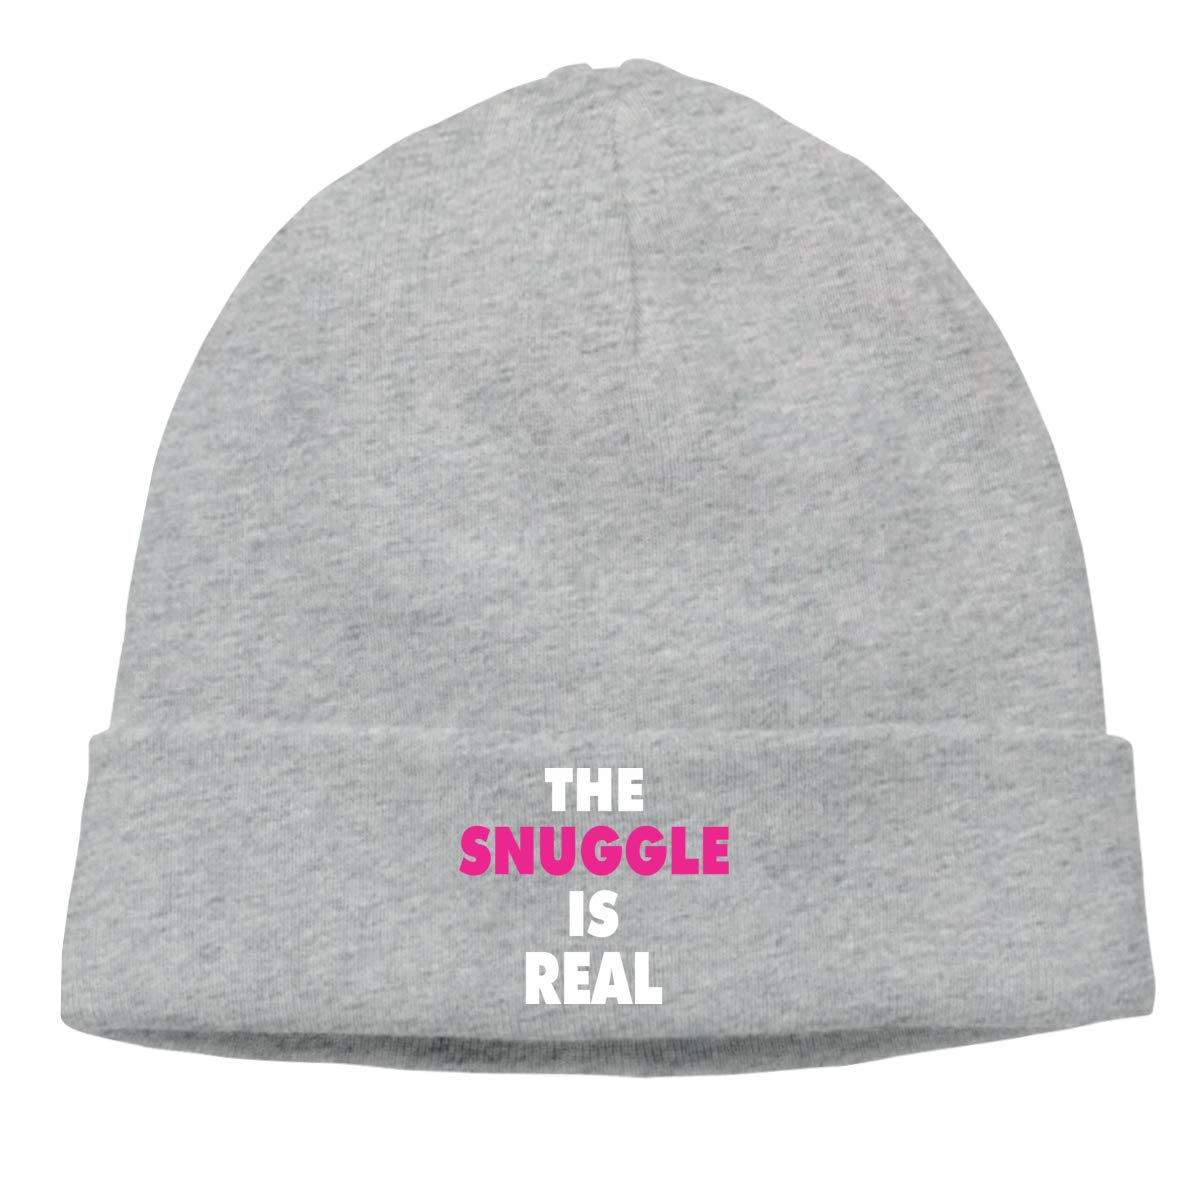 The Snuggle is Real 1 Knit Caps Beanie Skull for Mens Gray